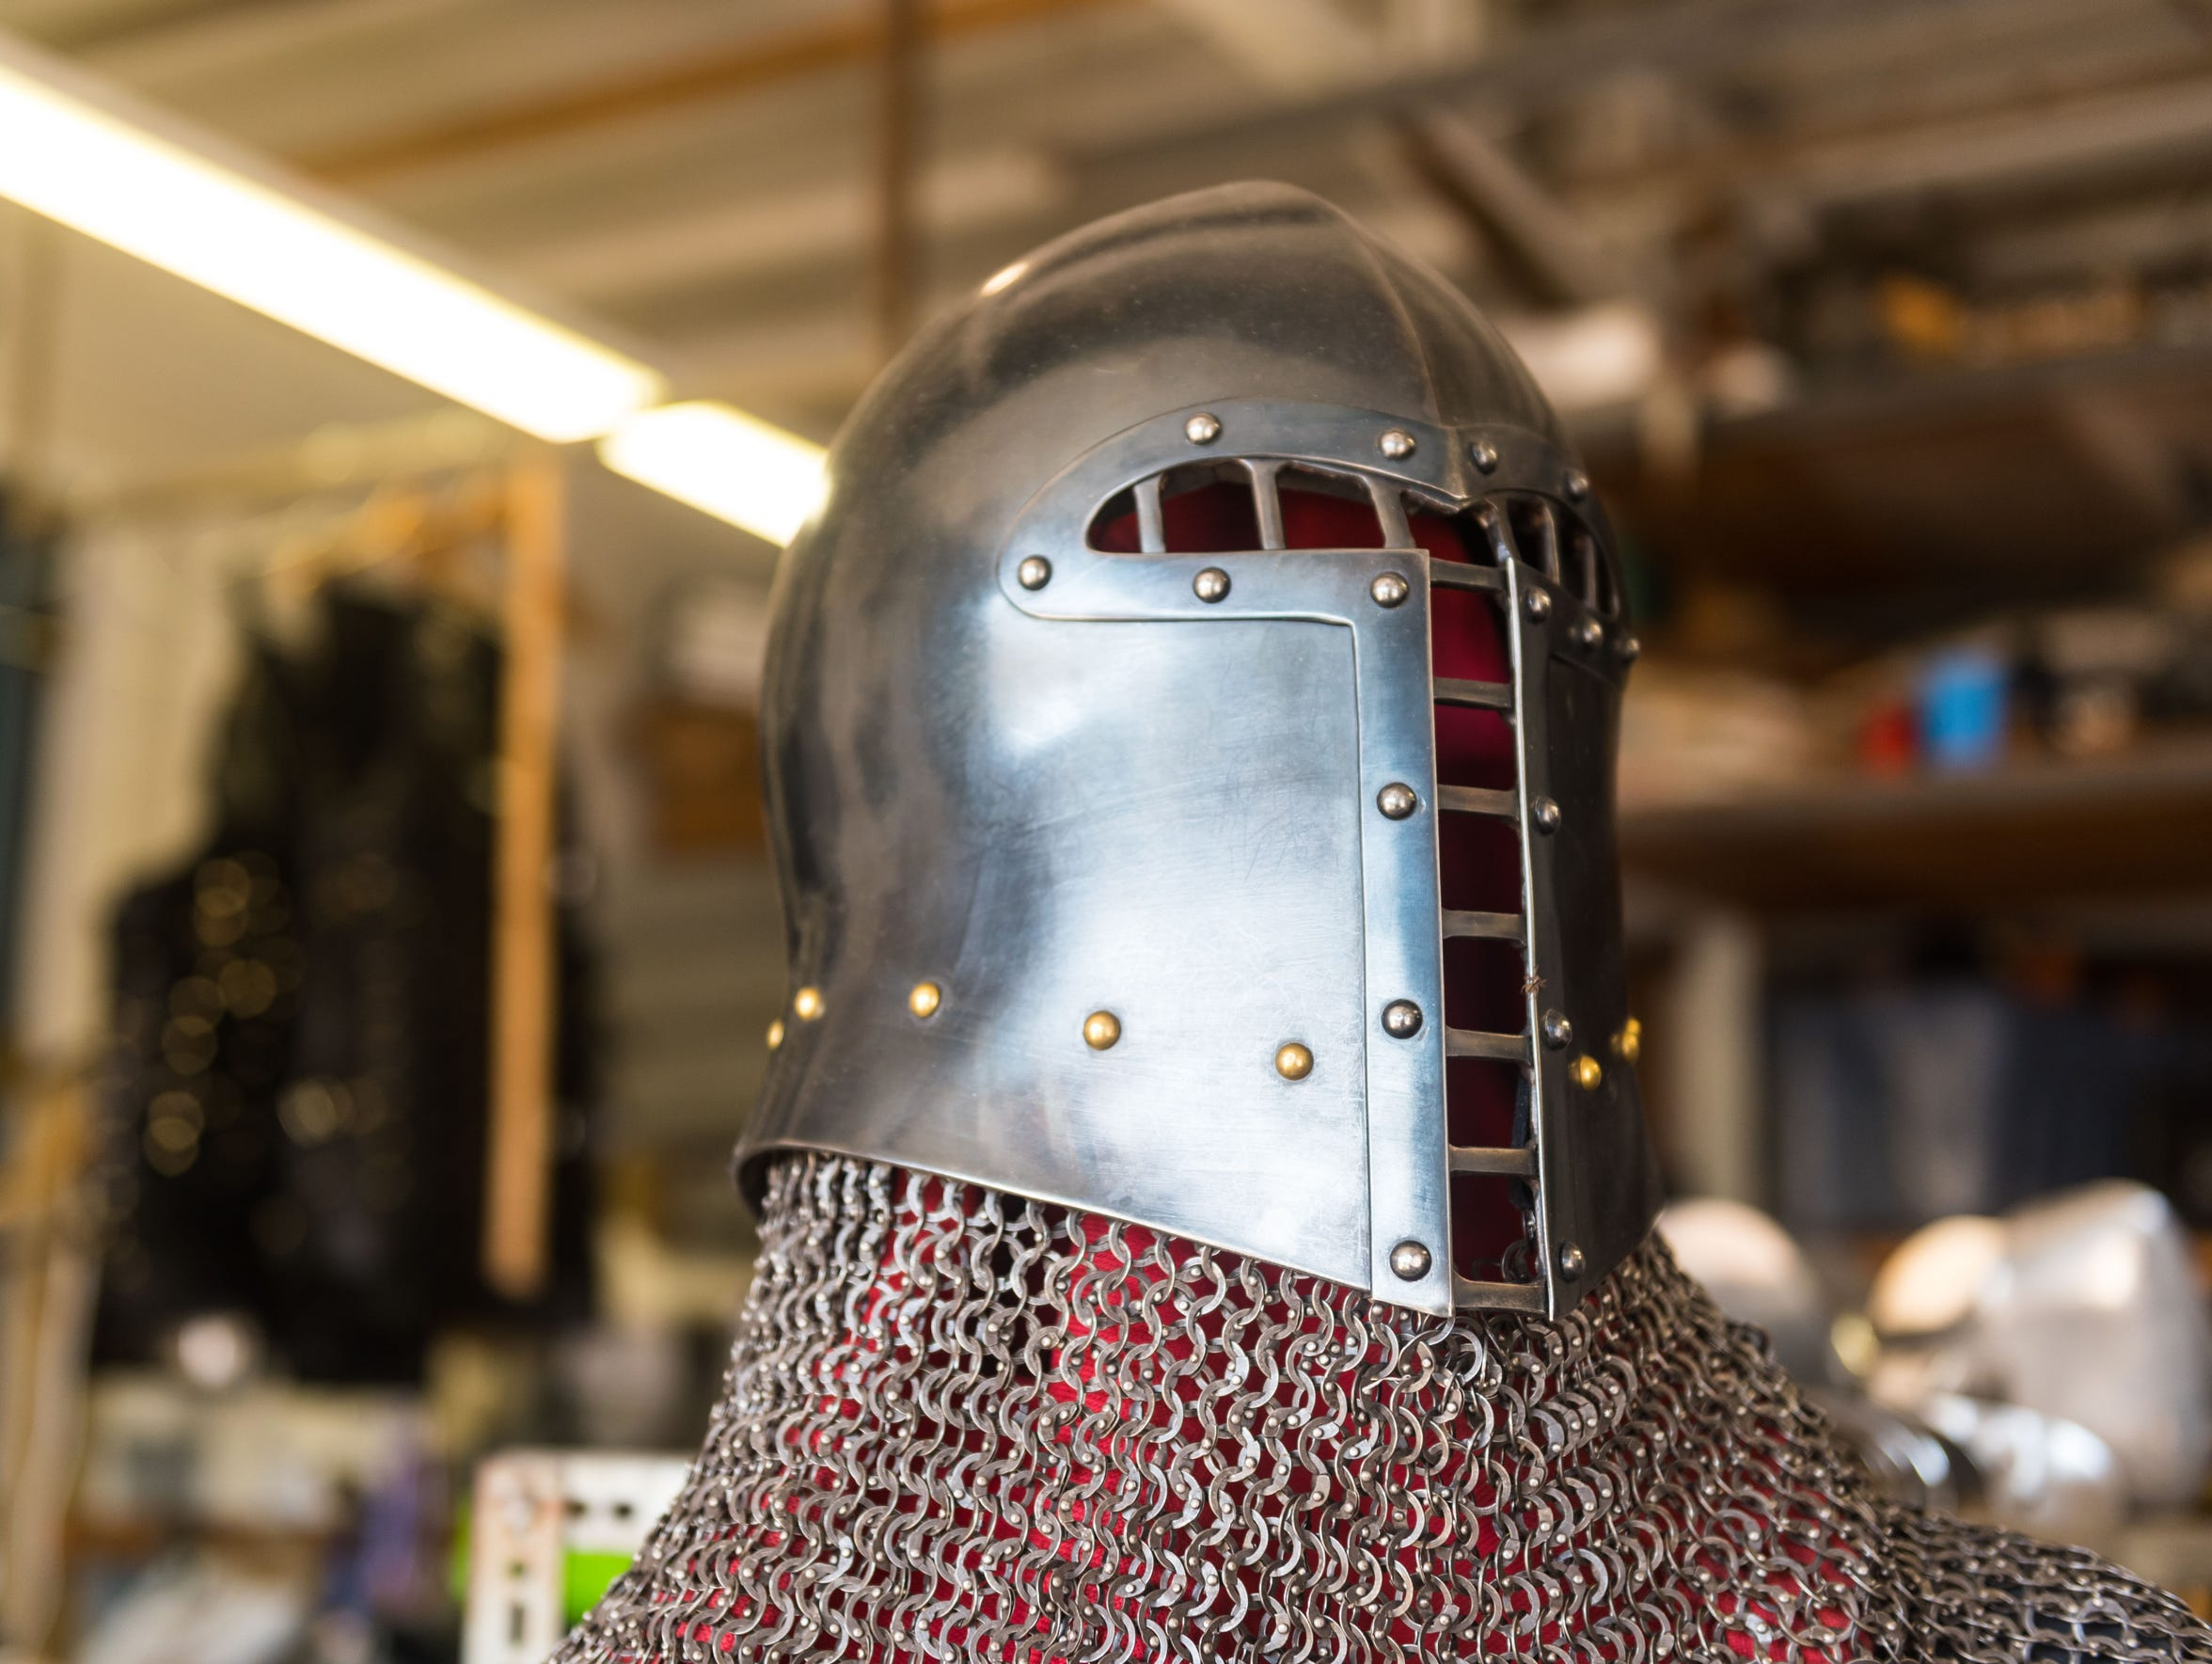 Armor and chain mail at the Icefalcon Armory in Buena